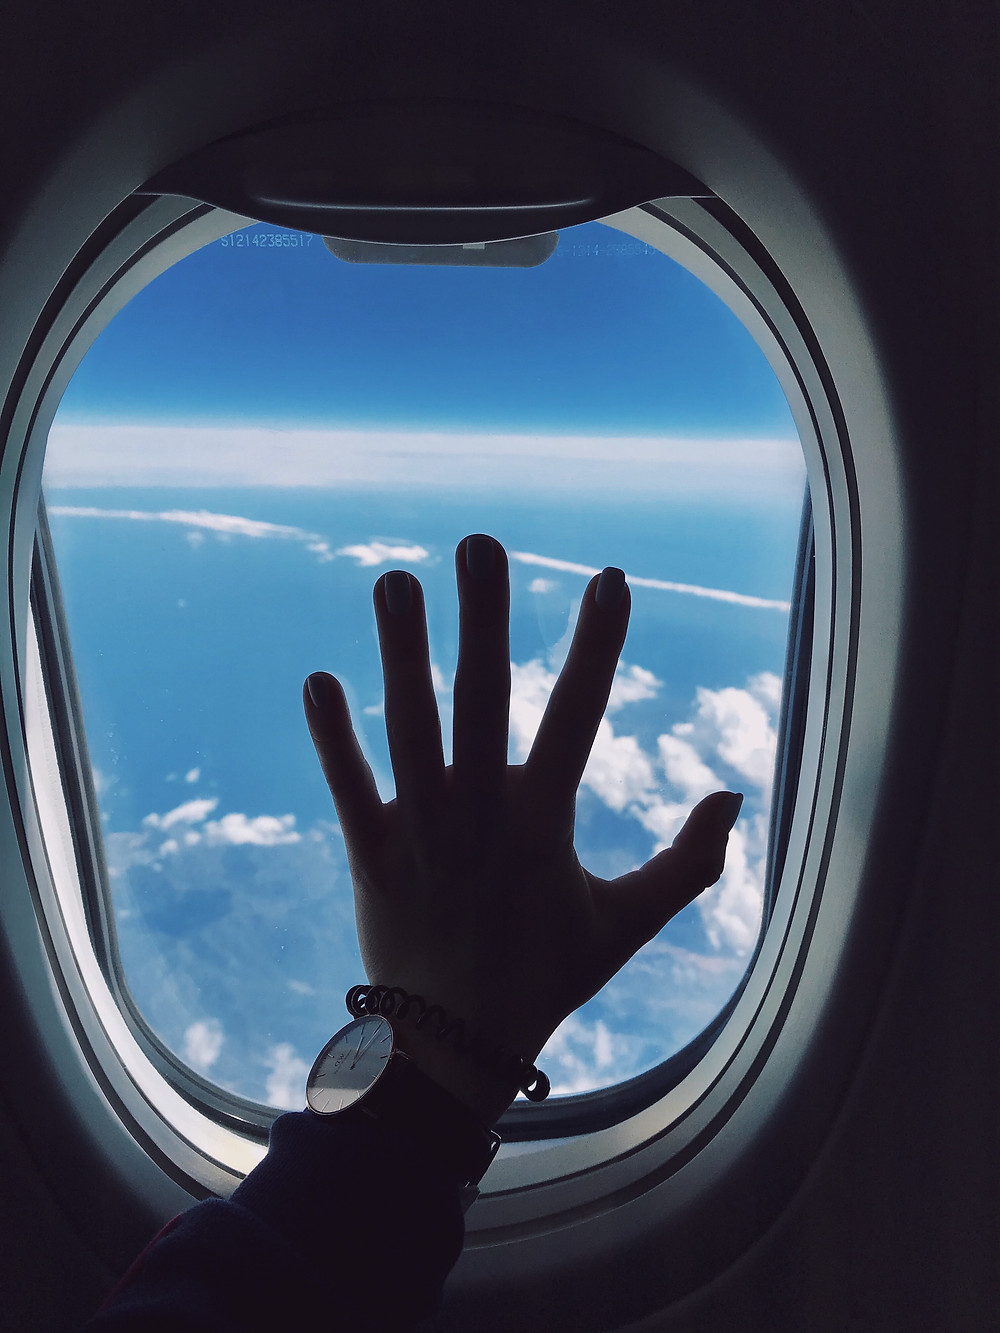 Fear of flying is a fear of being on an aeroplane (airplane), or other flying vehicle, such as a helicopter, while in flight. It is also referred to as flying phobia, flight phobia, aviophobia or aerophobia (although the last also means a fear of drafts or of fresh air).